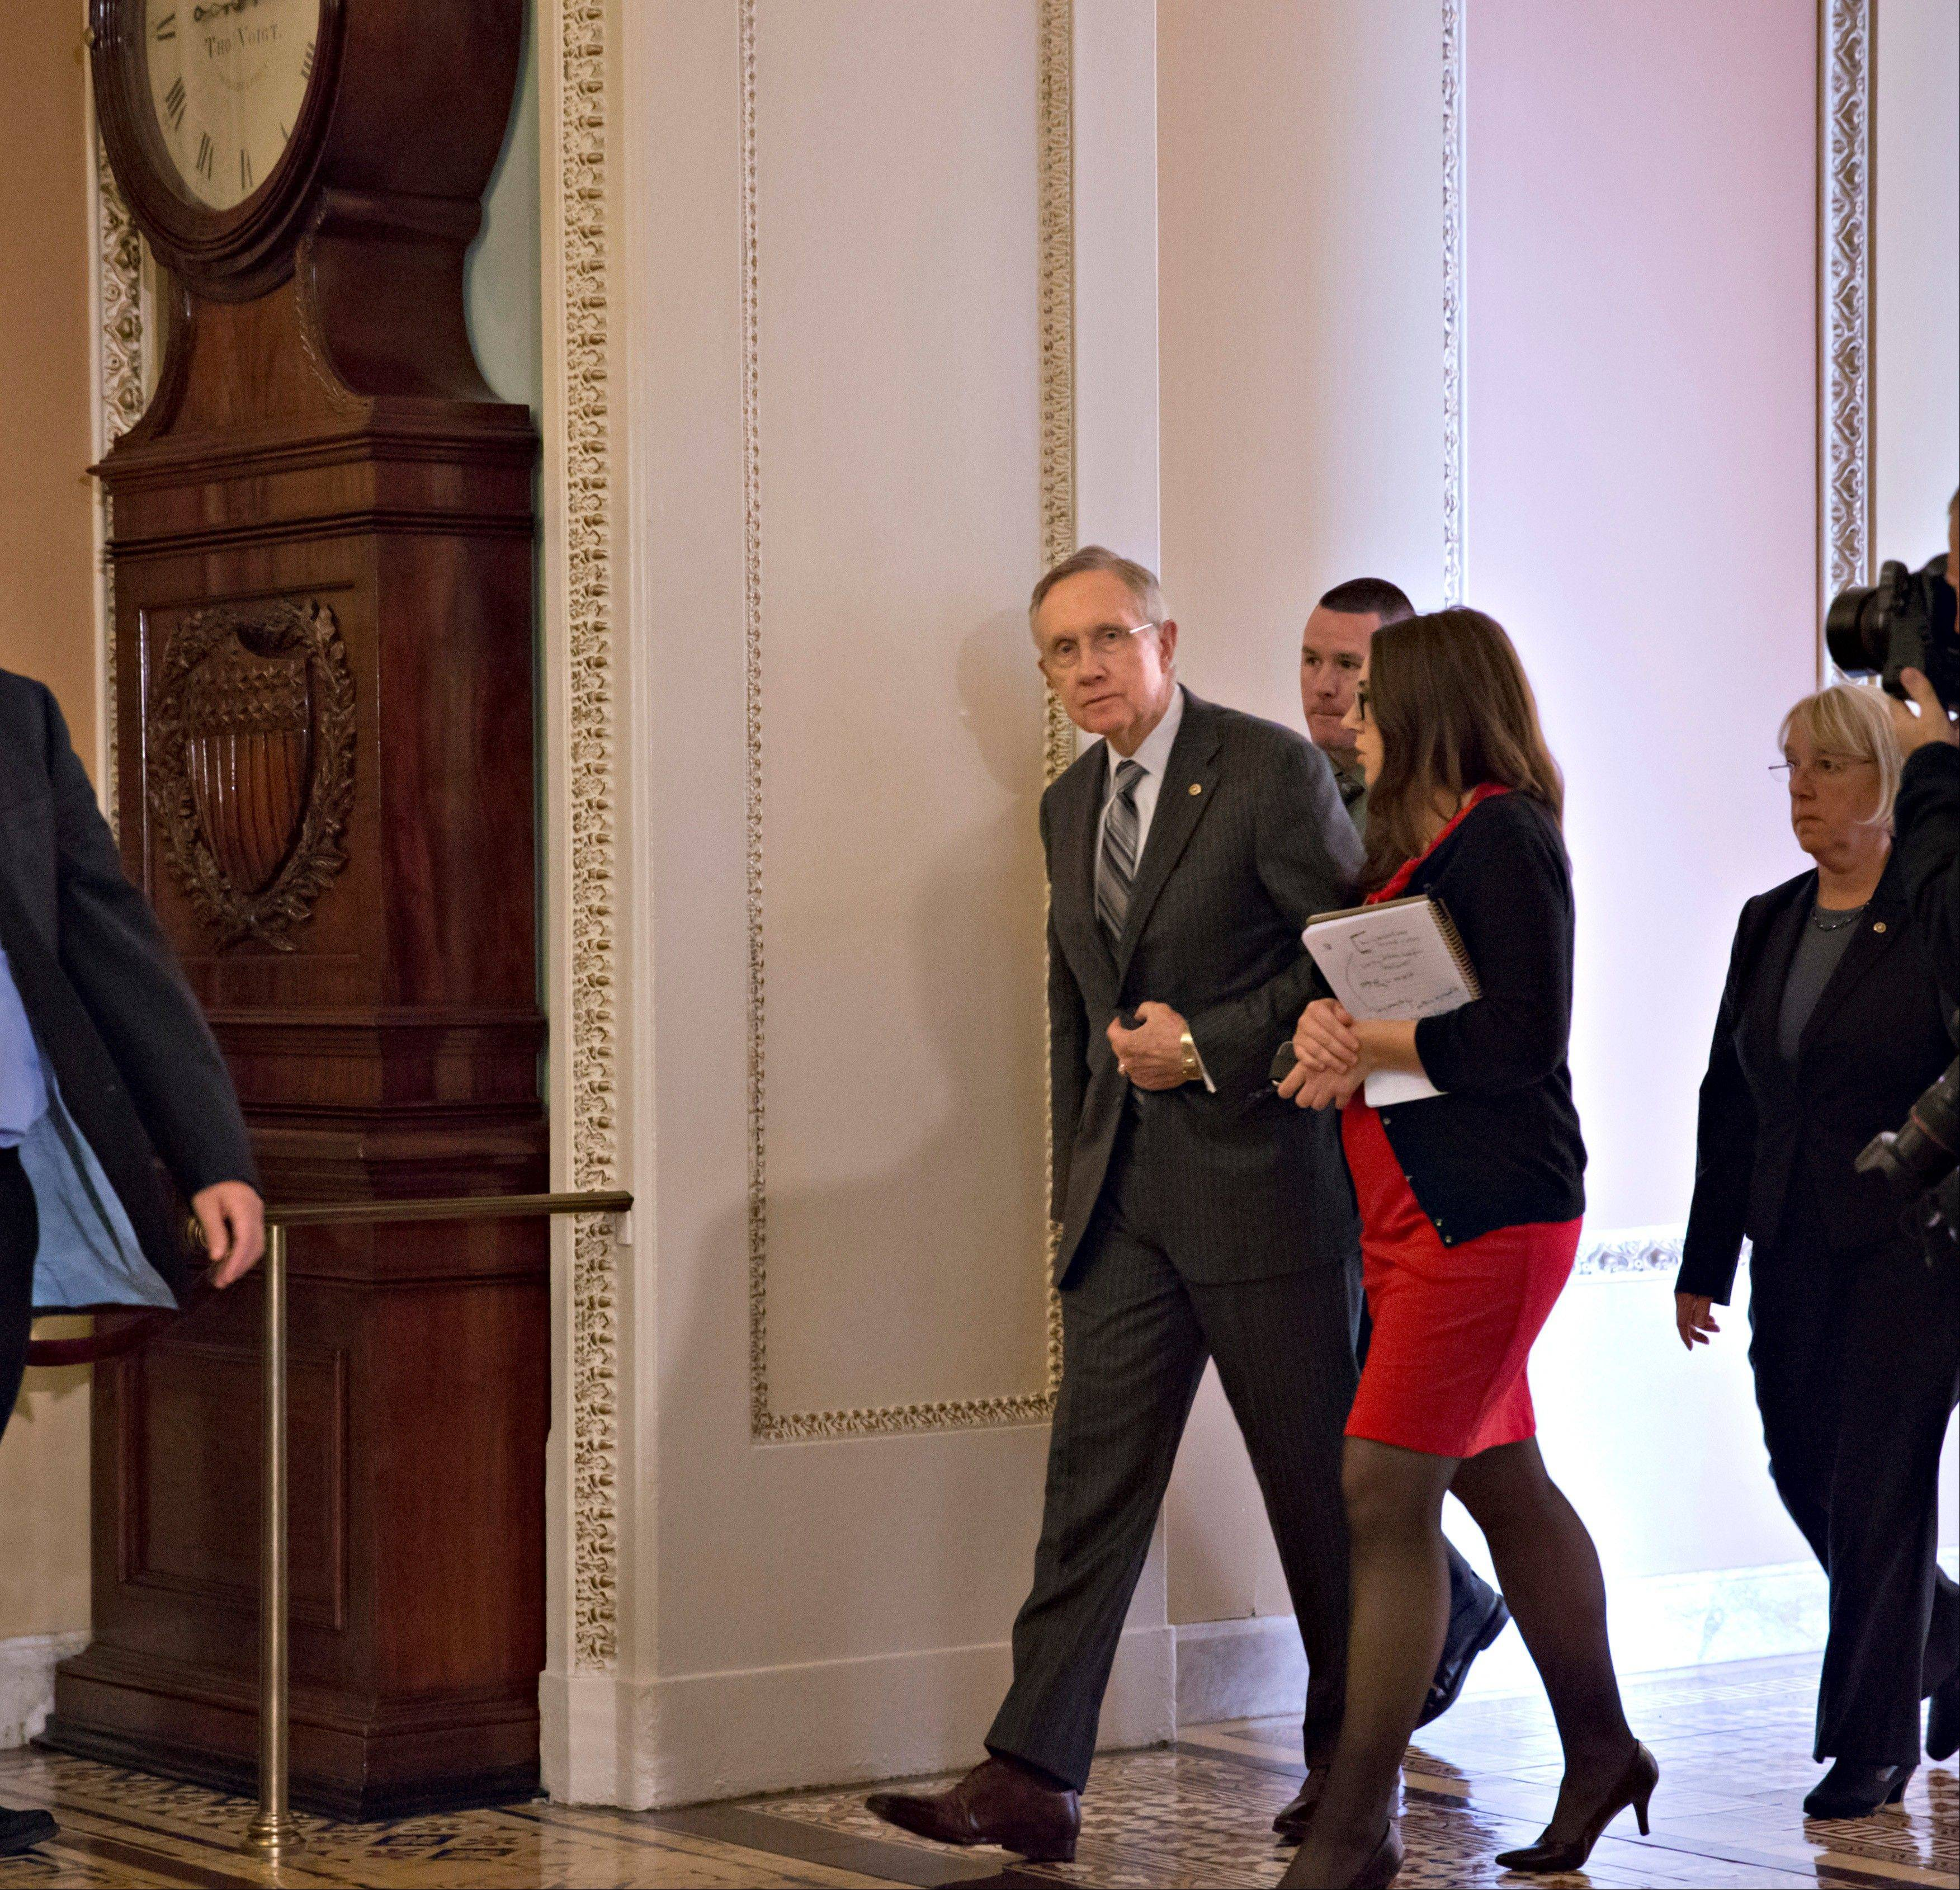 Senate Majority Leader Harry Reid, D-Nev., walks to the Senate floor following lunch with fellow Democrats, at the Capitol in Washington, Tuesday.